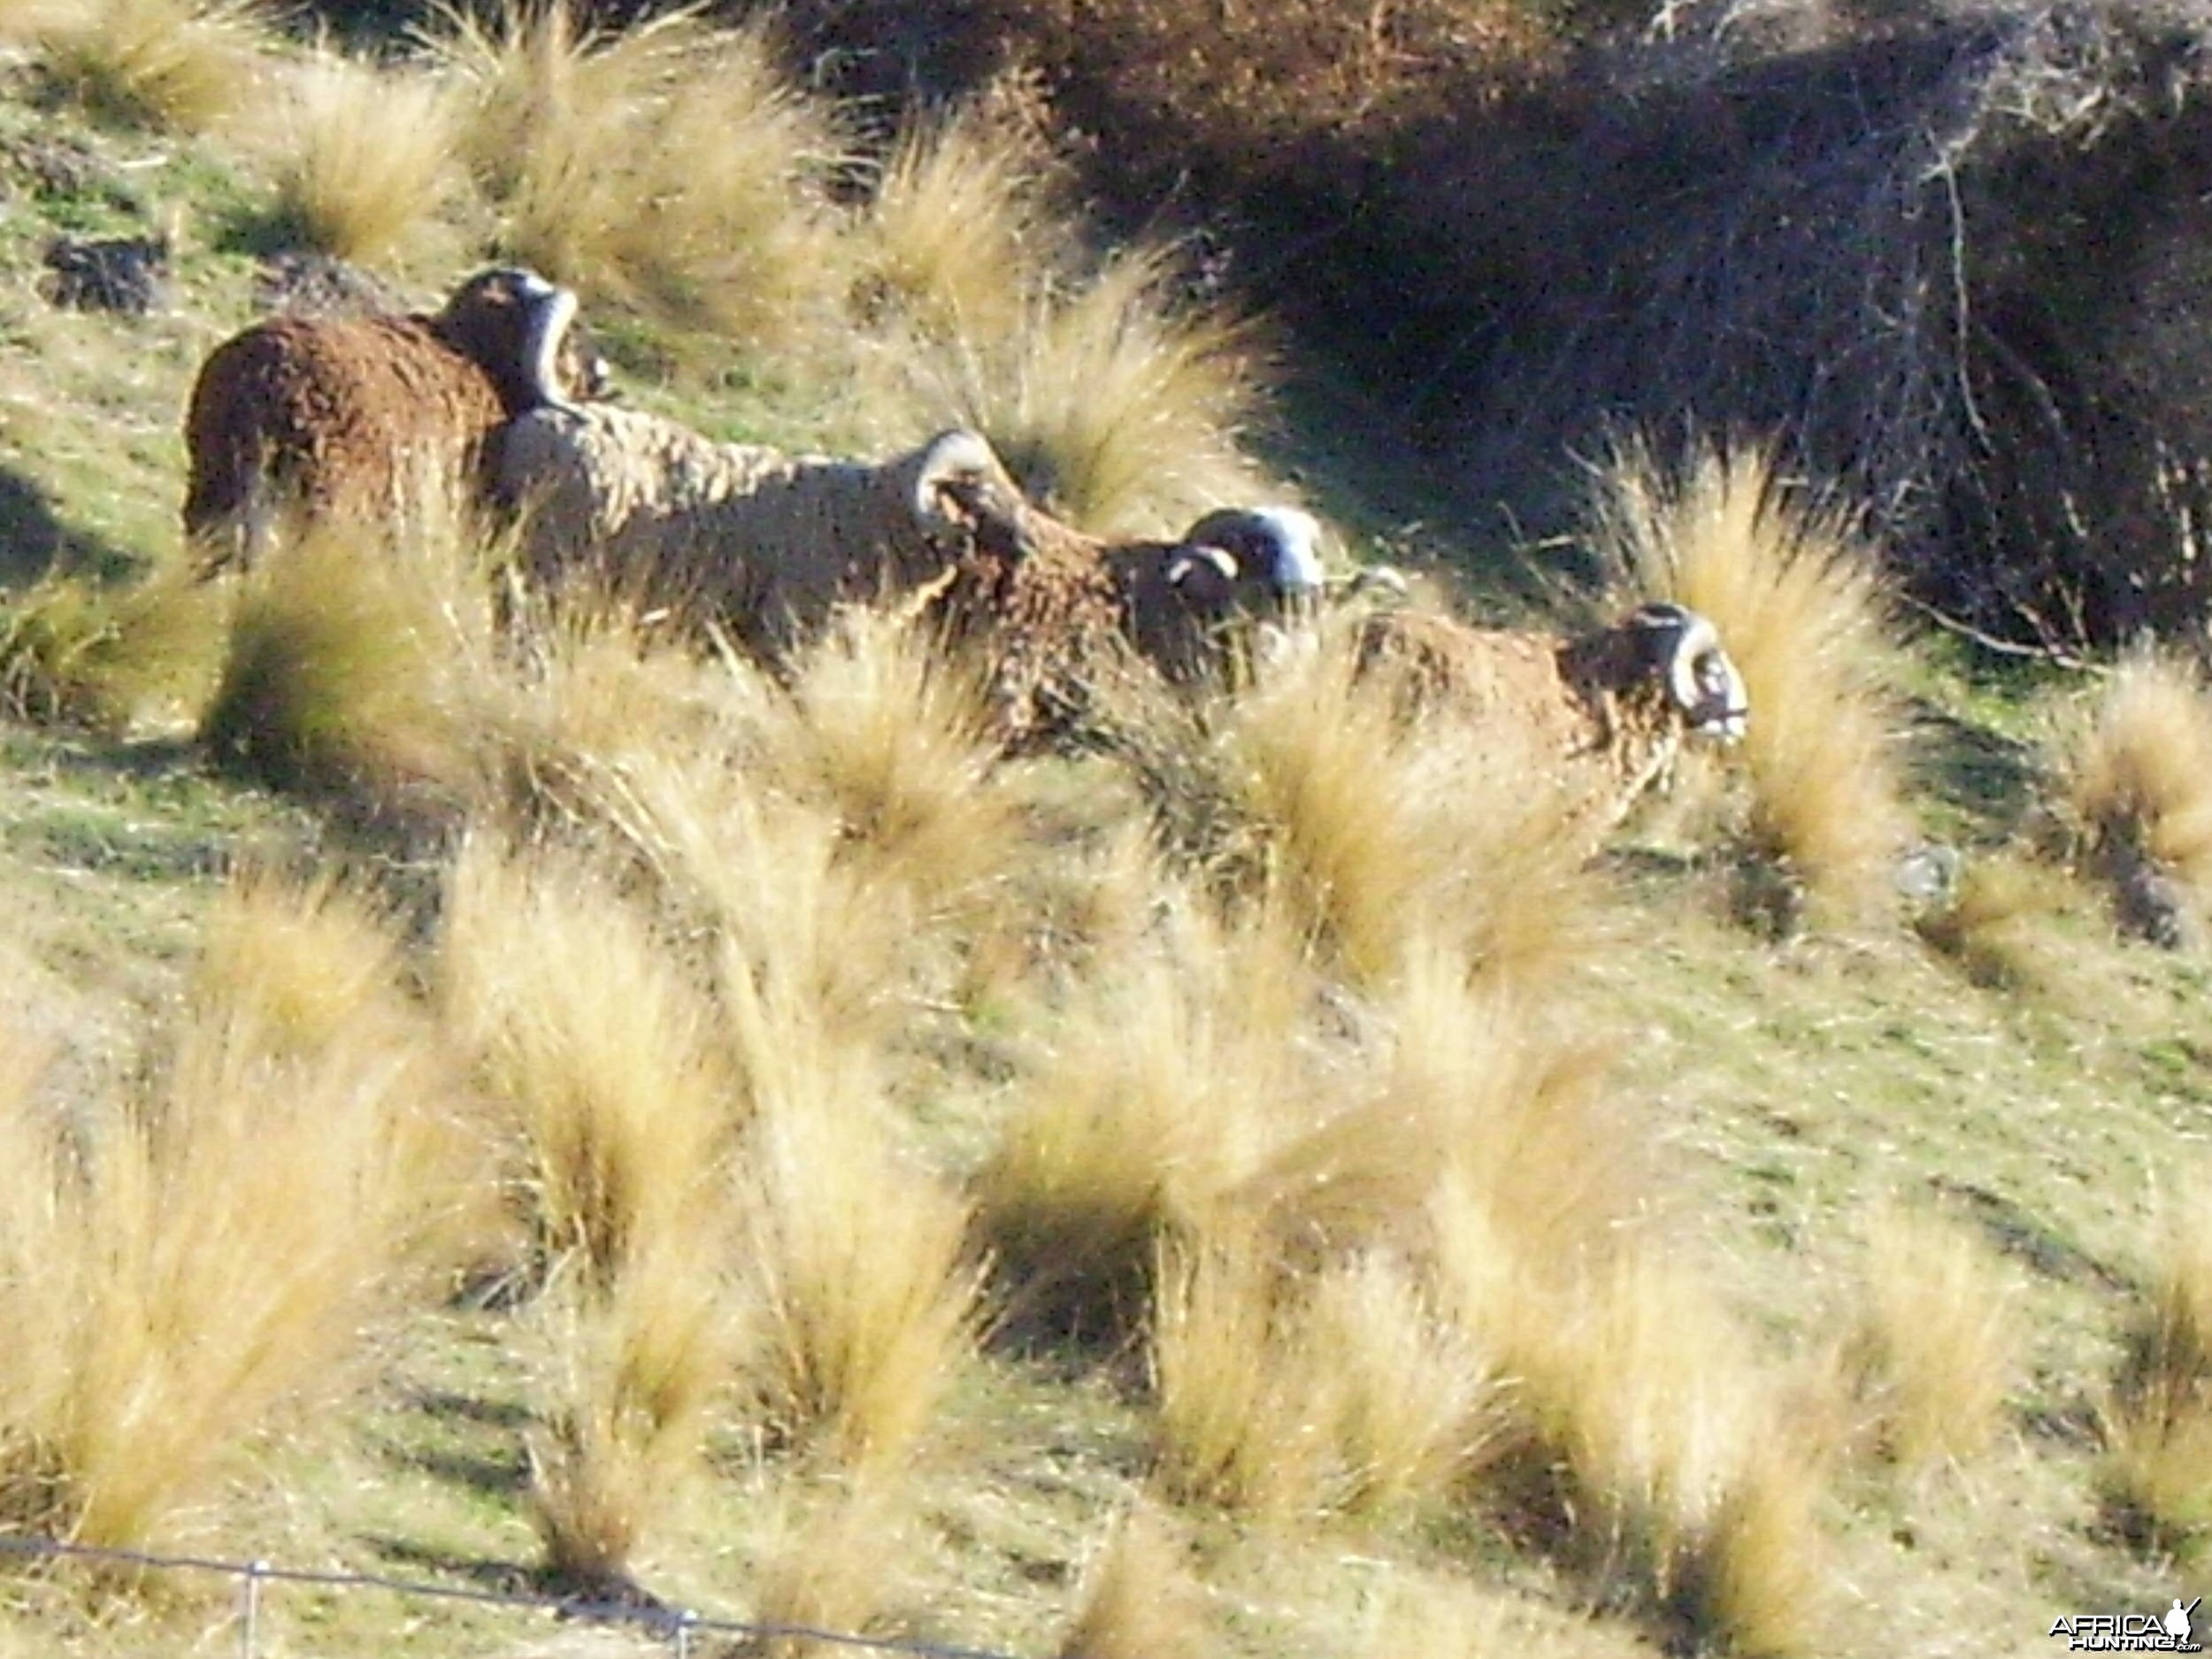 Awapawa rams New Zealand